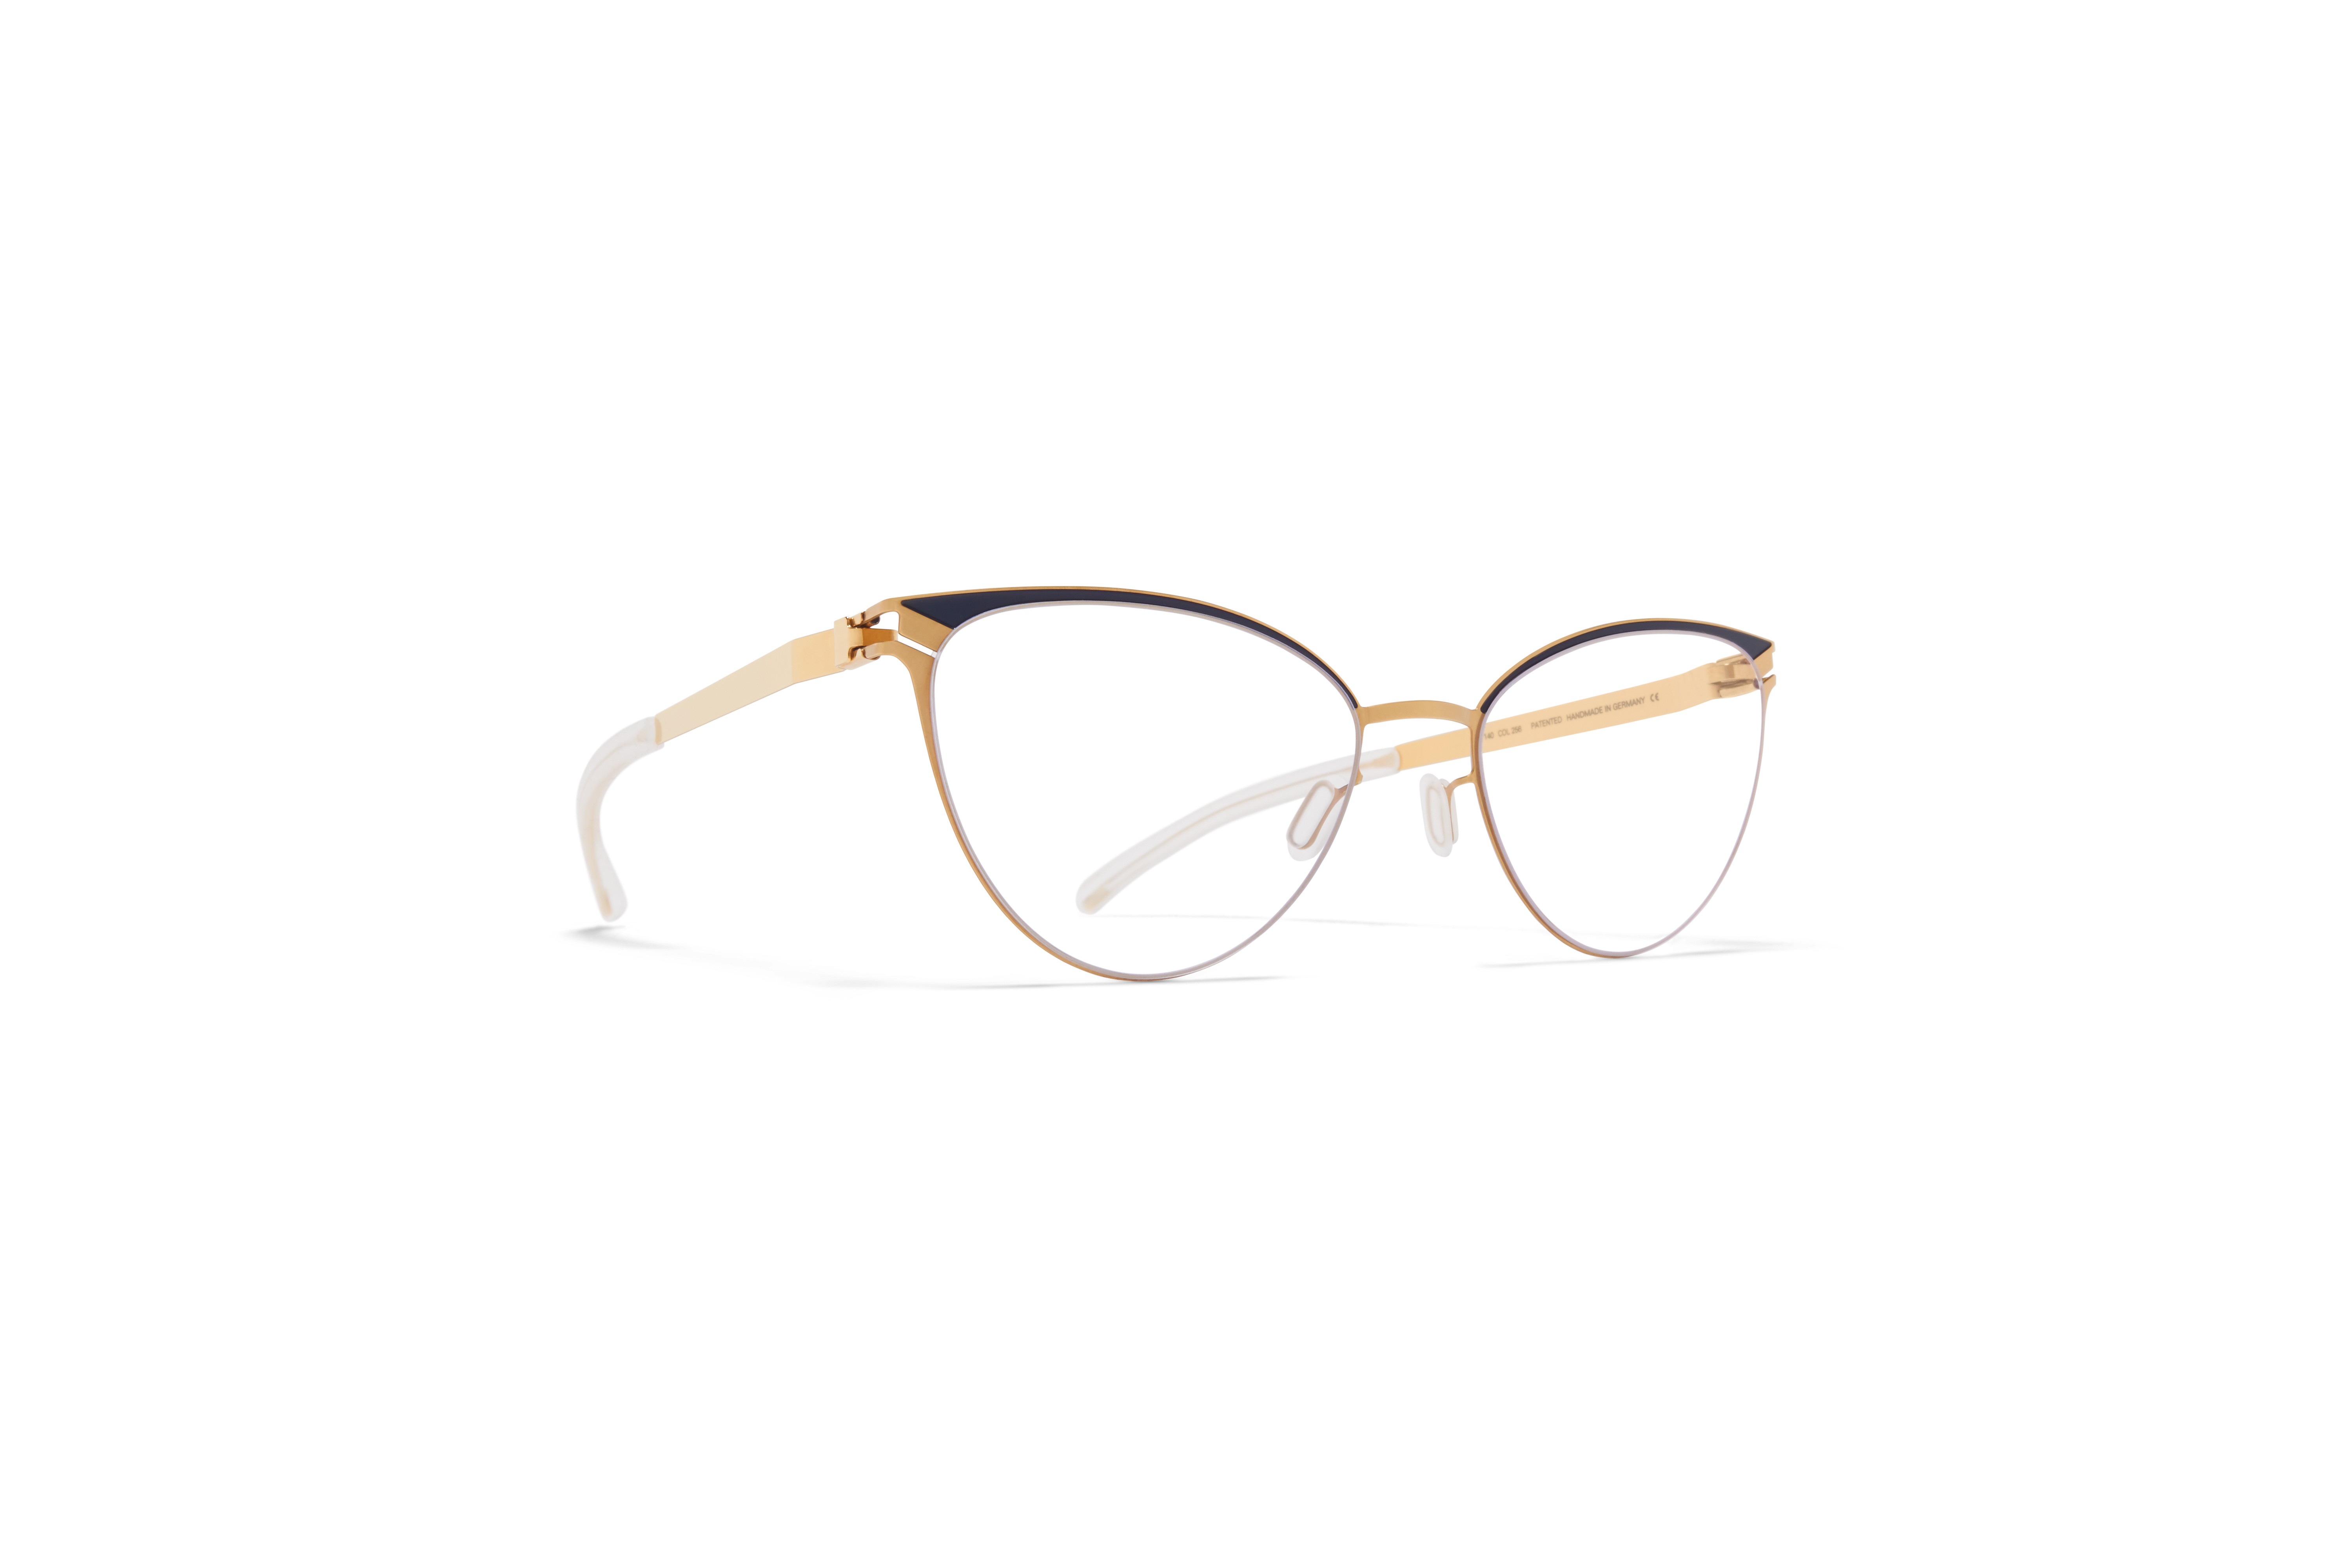 CYNDIE Unisex Fashion Round Glasses Frames Glasses Optical Transparent Glasses with Clear Lens